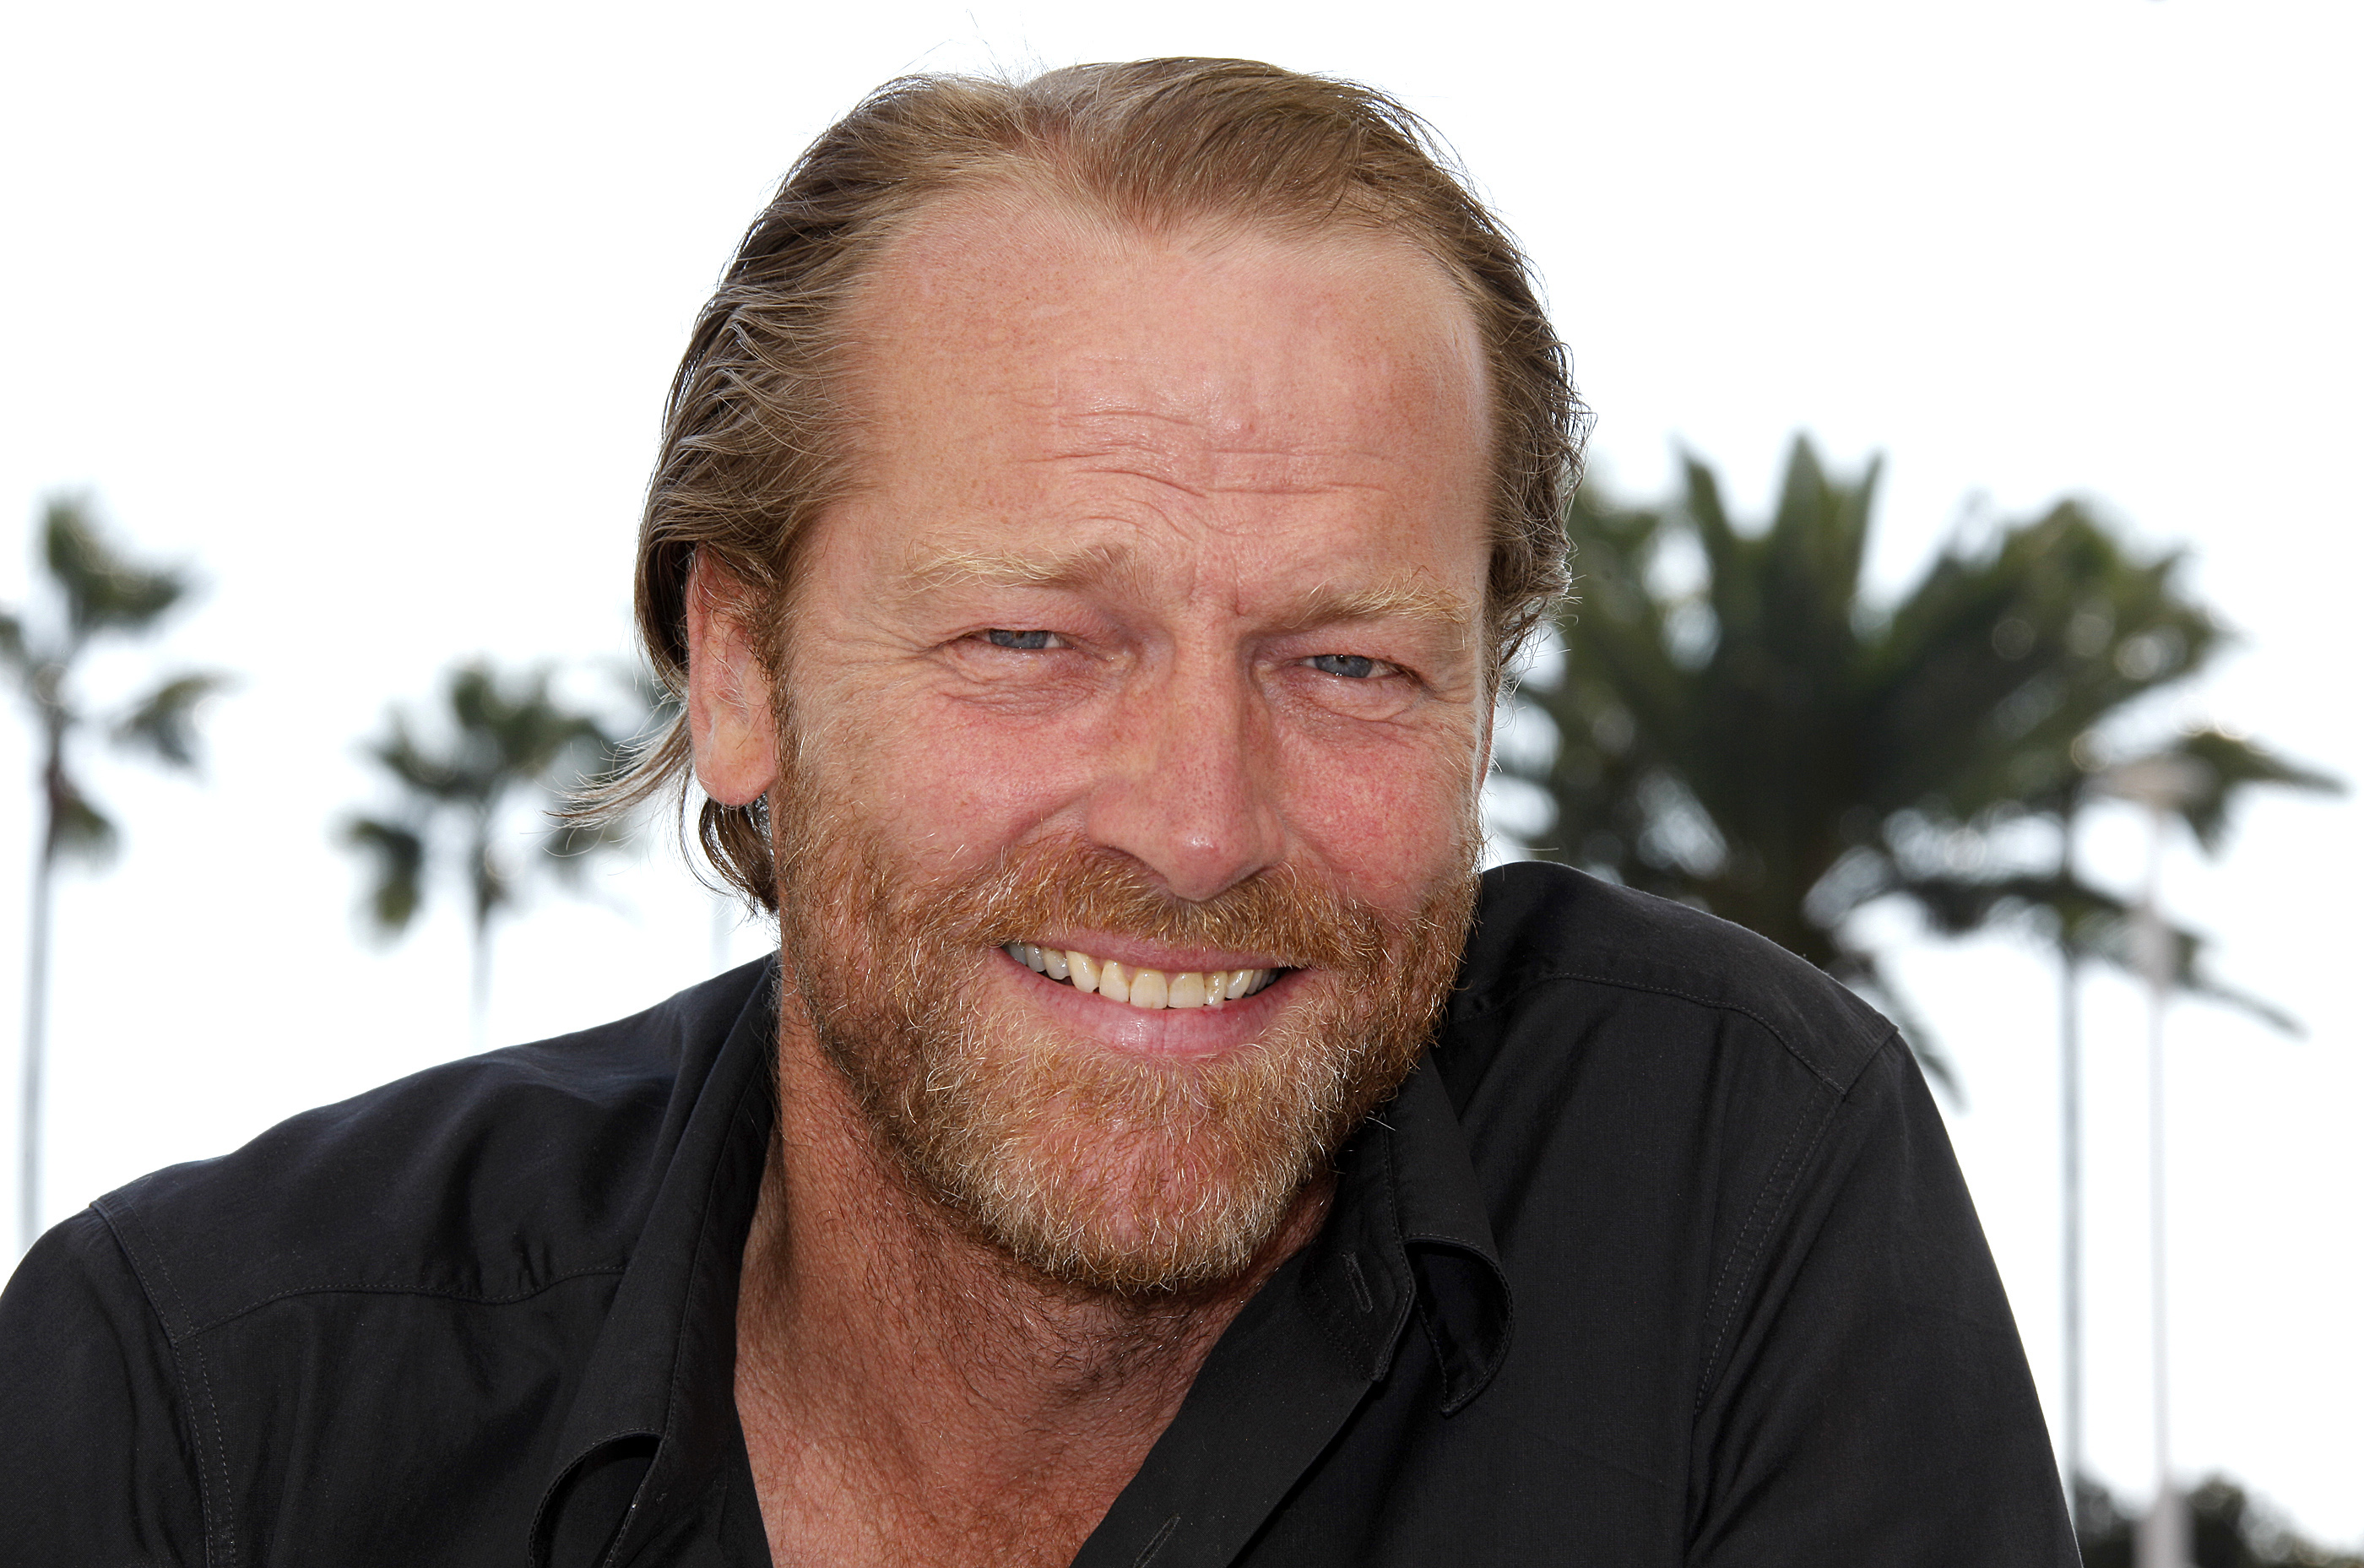 """Actor Iain Glen poses while promoting the television series """"Jack Taylor"""" in Cannes, France, October 3, 2011."""